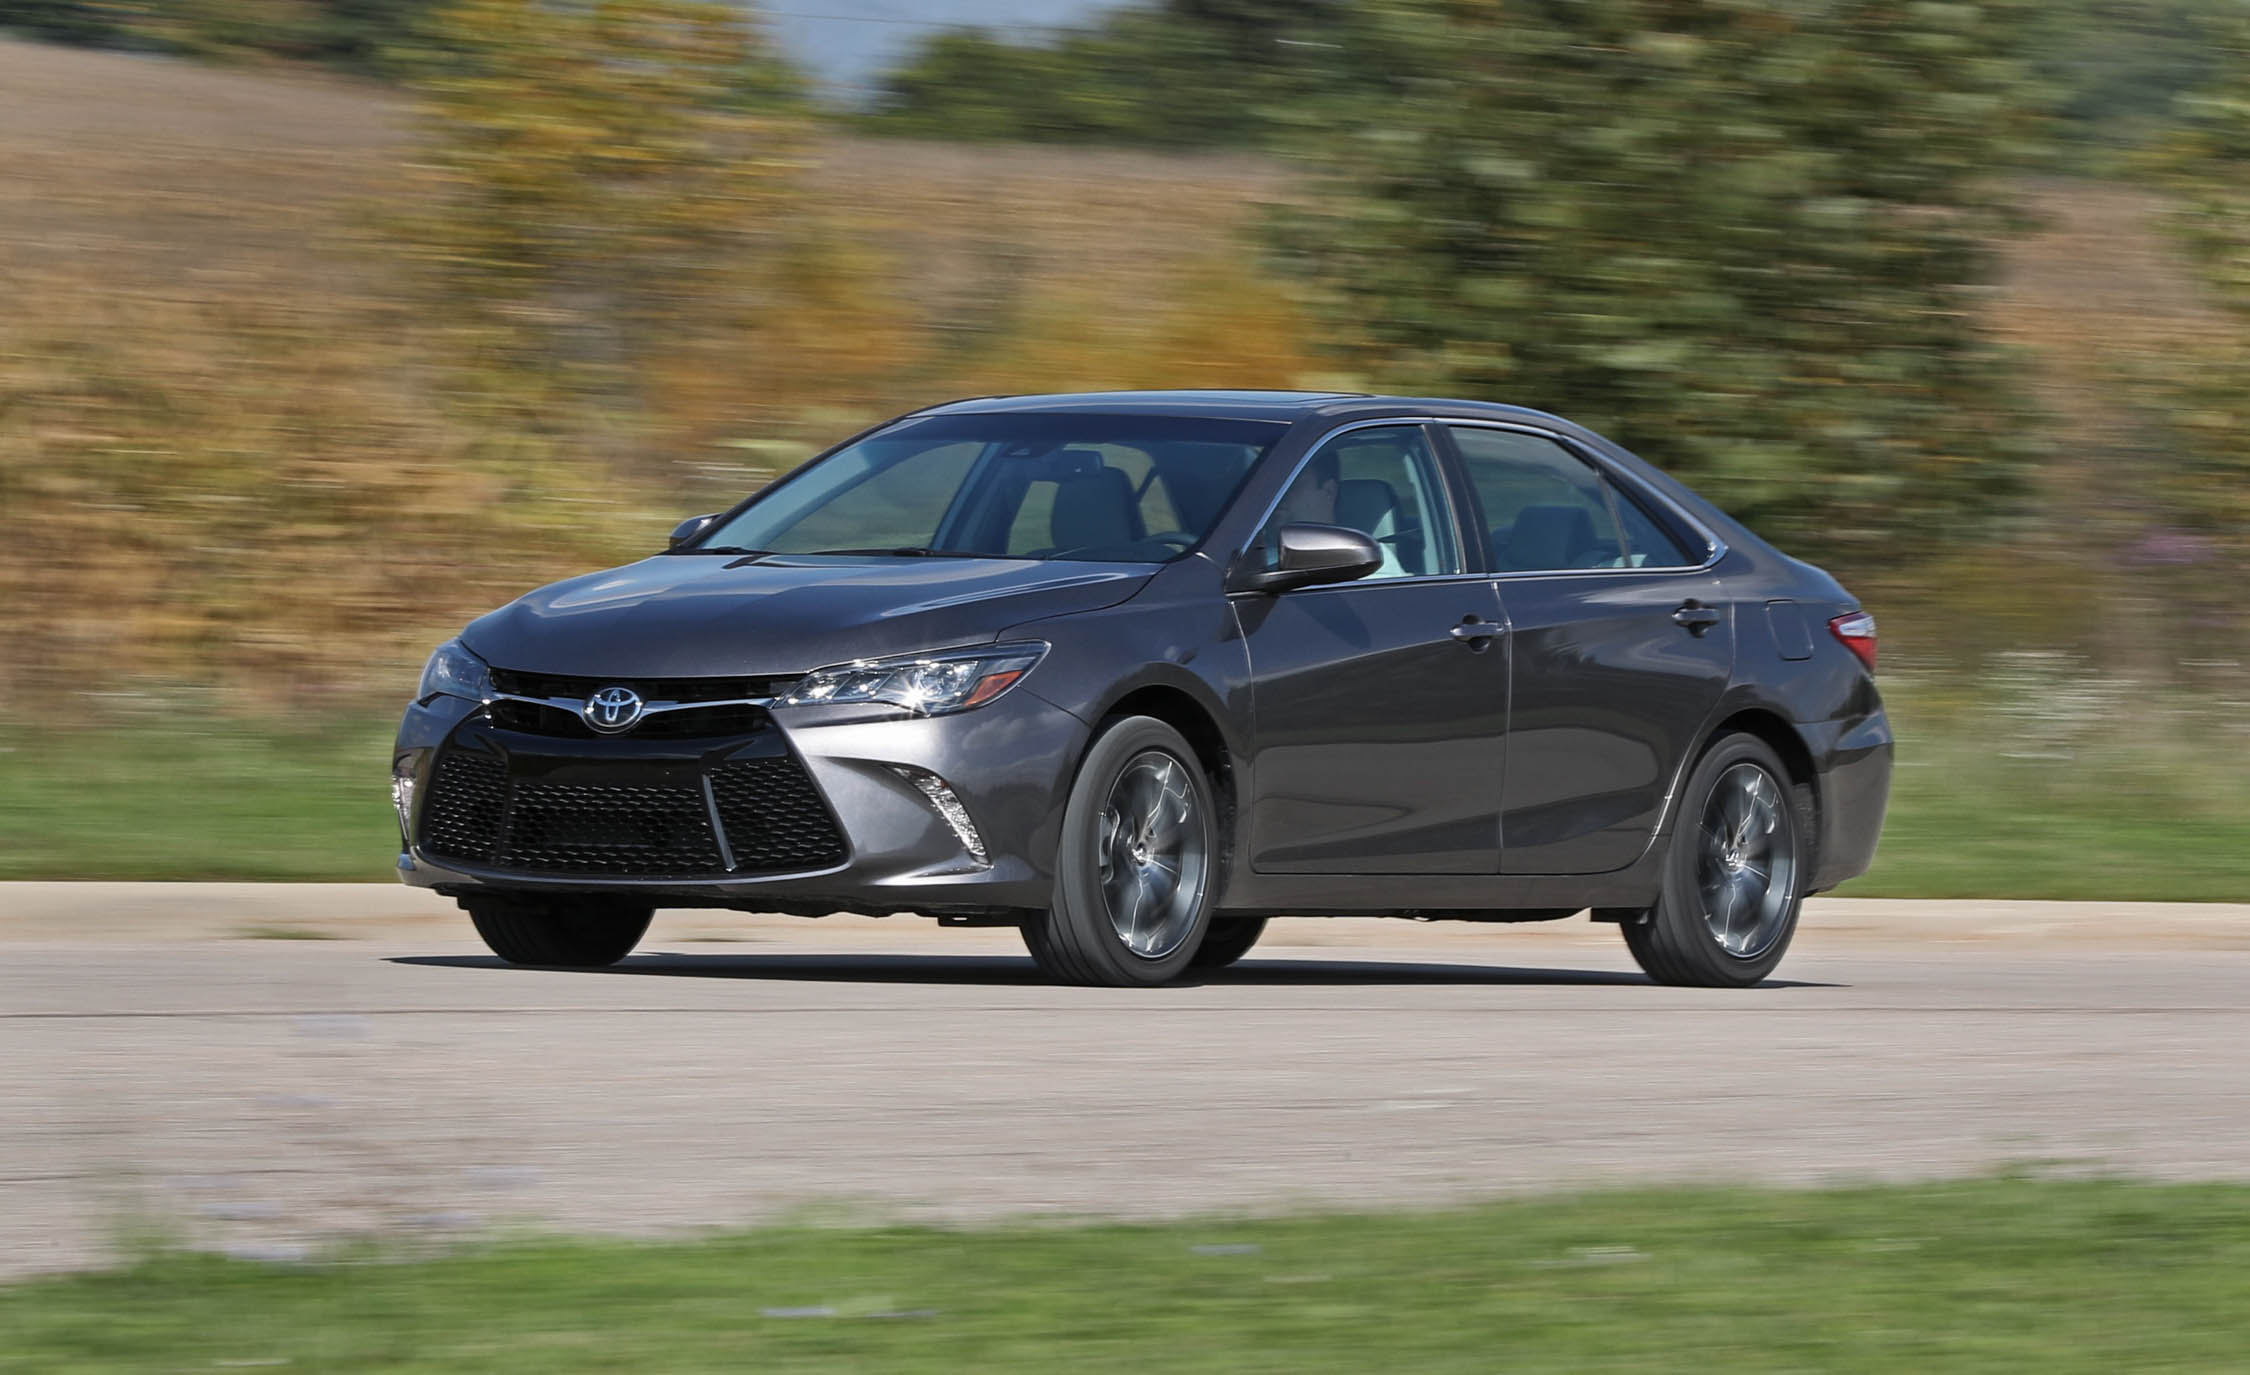 2017 Toyota Camry Grey Metallic (View 24 of 37)